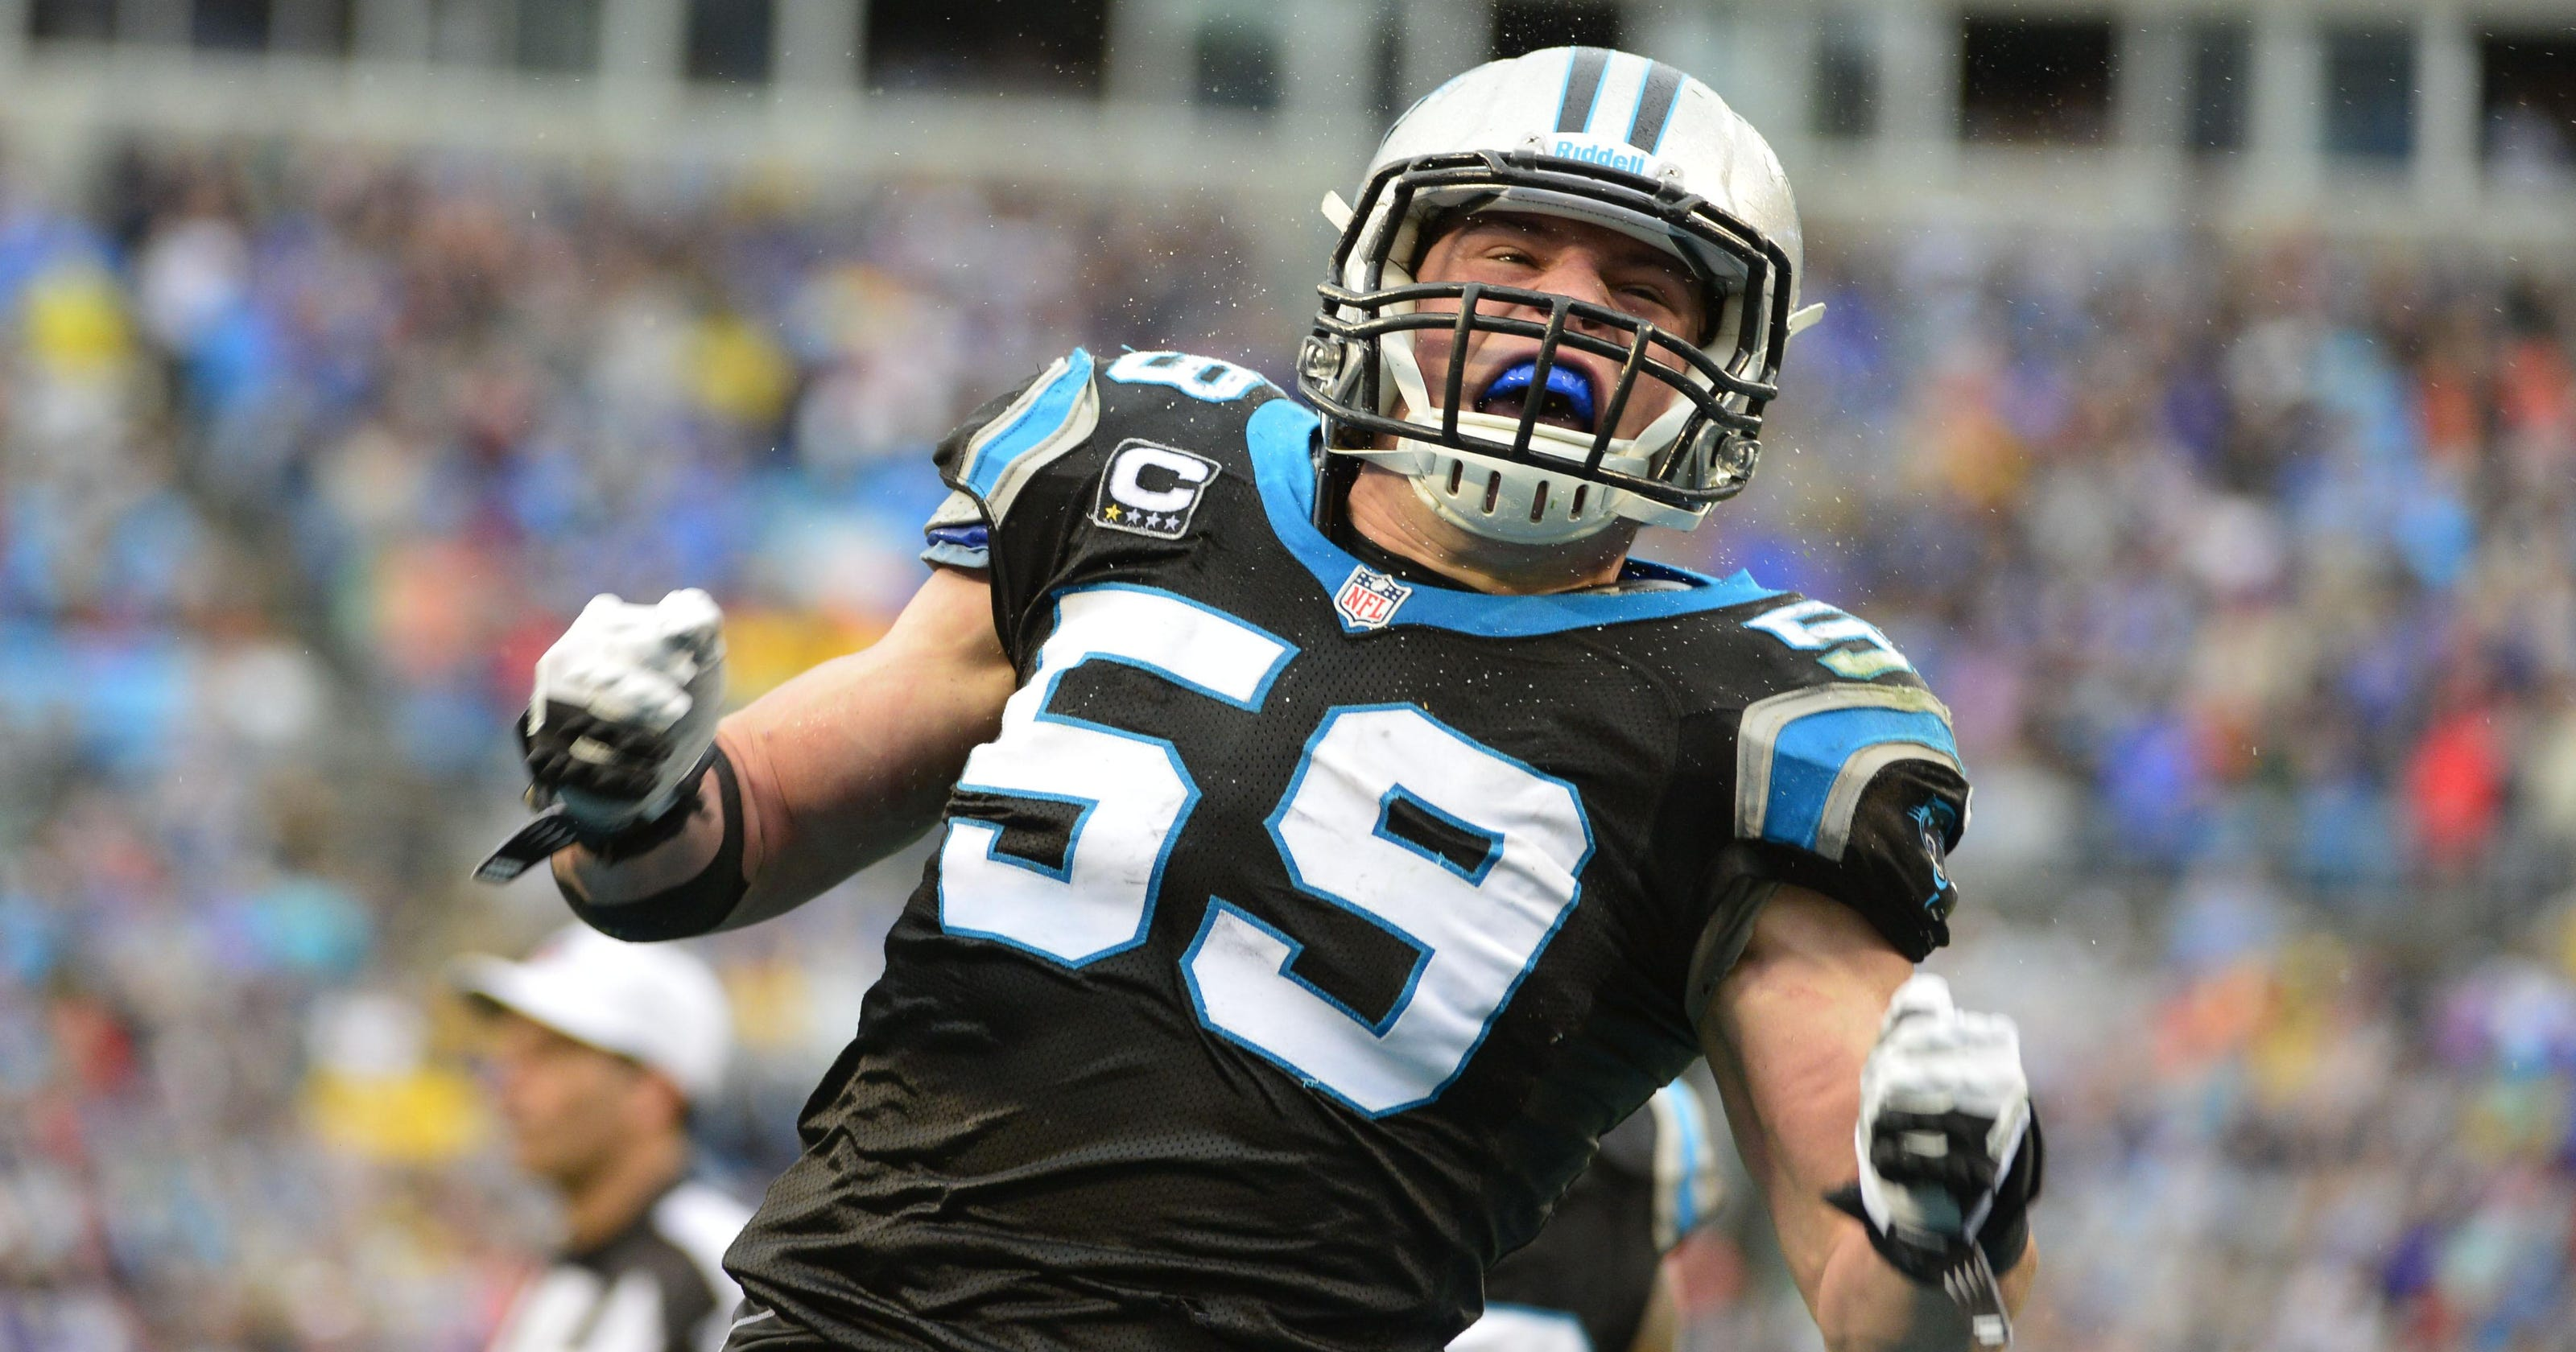 uk availability f3633 78ab7 Kuechly, NFL All-Pro, completes college degree